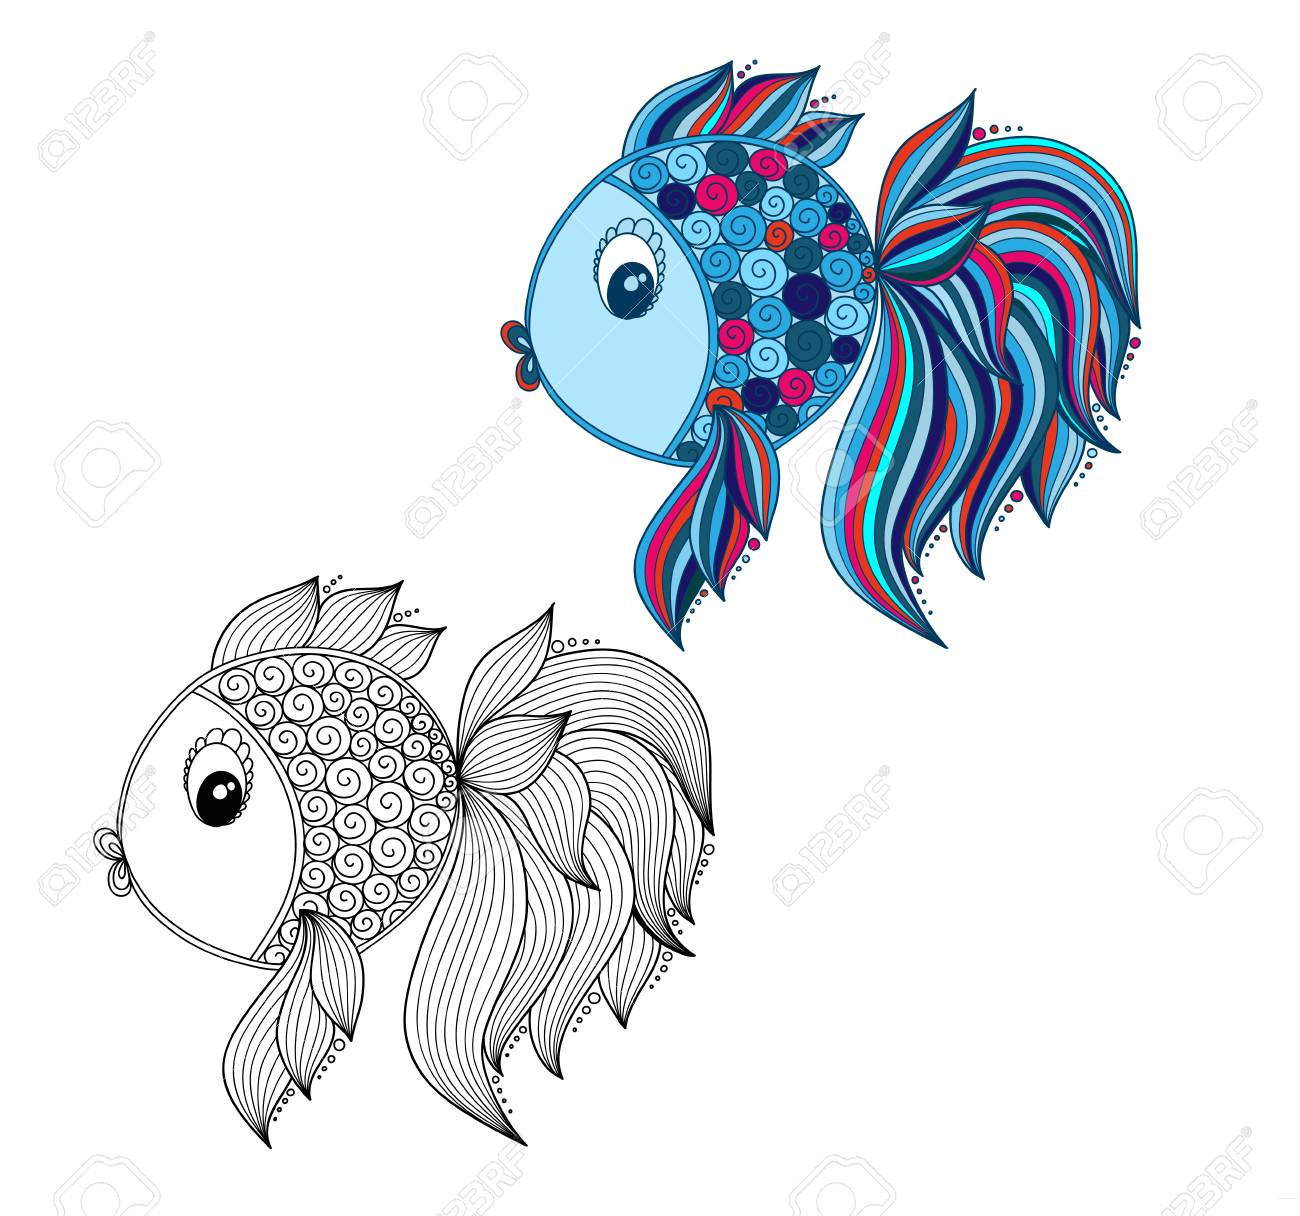 Color Coloring Book For Young Children - Colorful Doodle Fish Stock ...